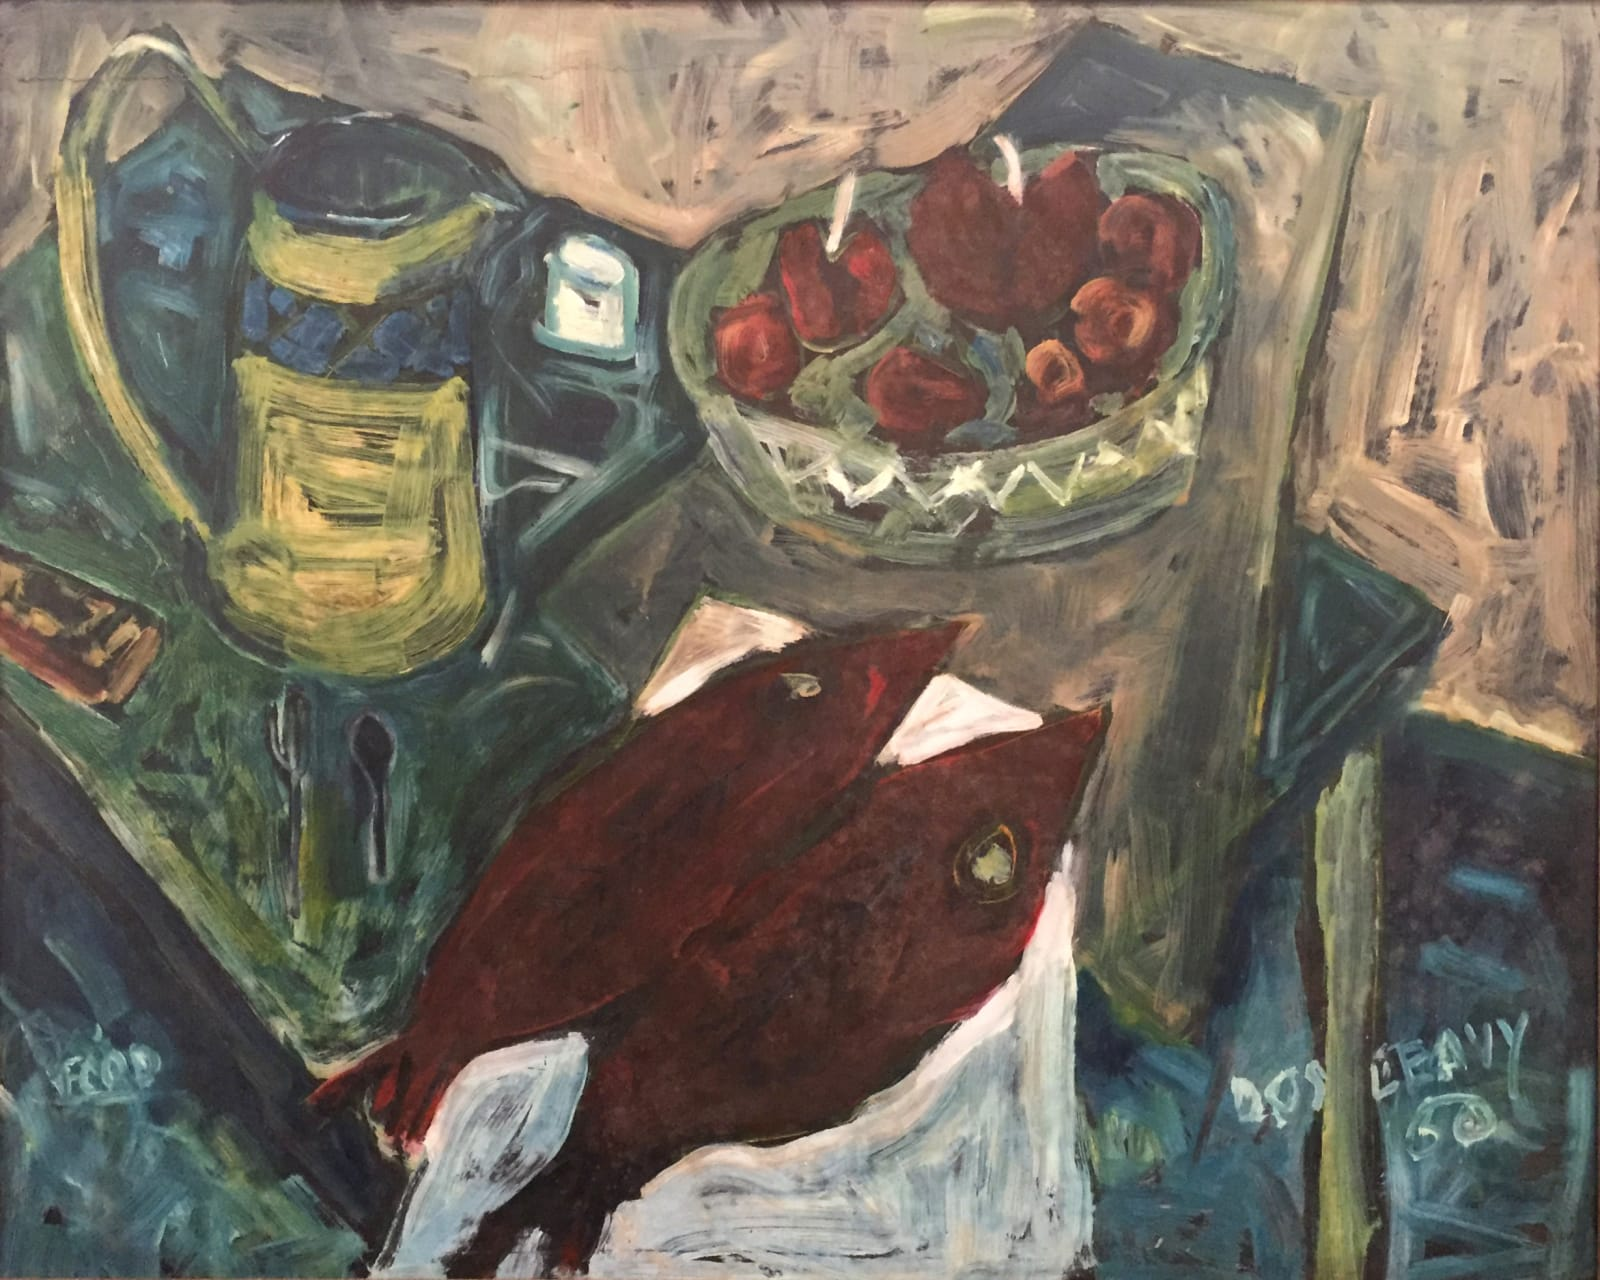 JP Donleavy  Another survival feast (dated 1950)  Oil on board  75 x 95 cm